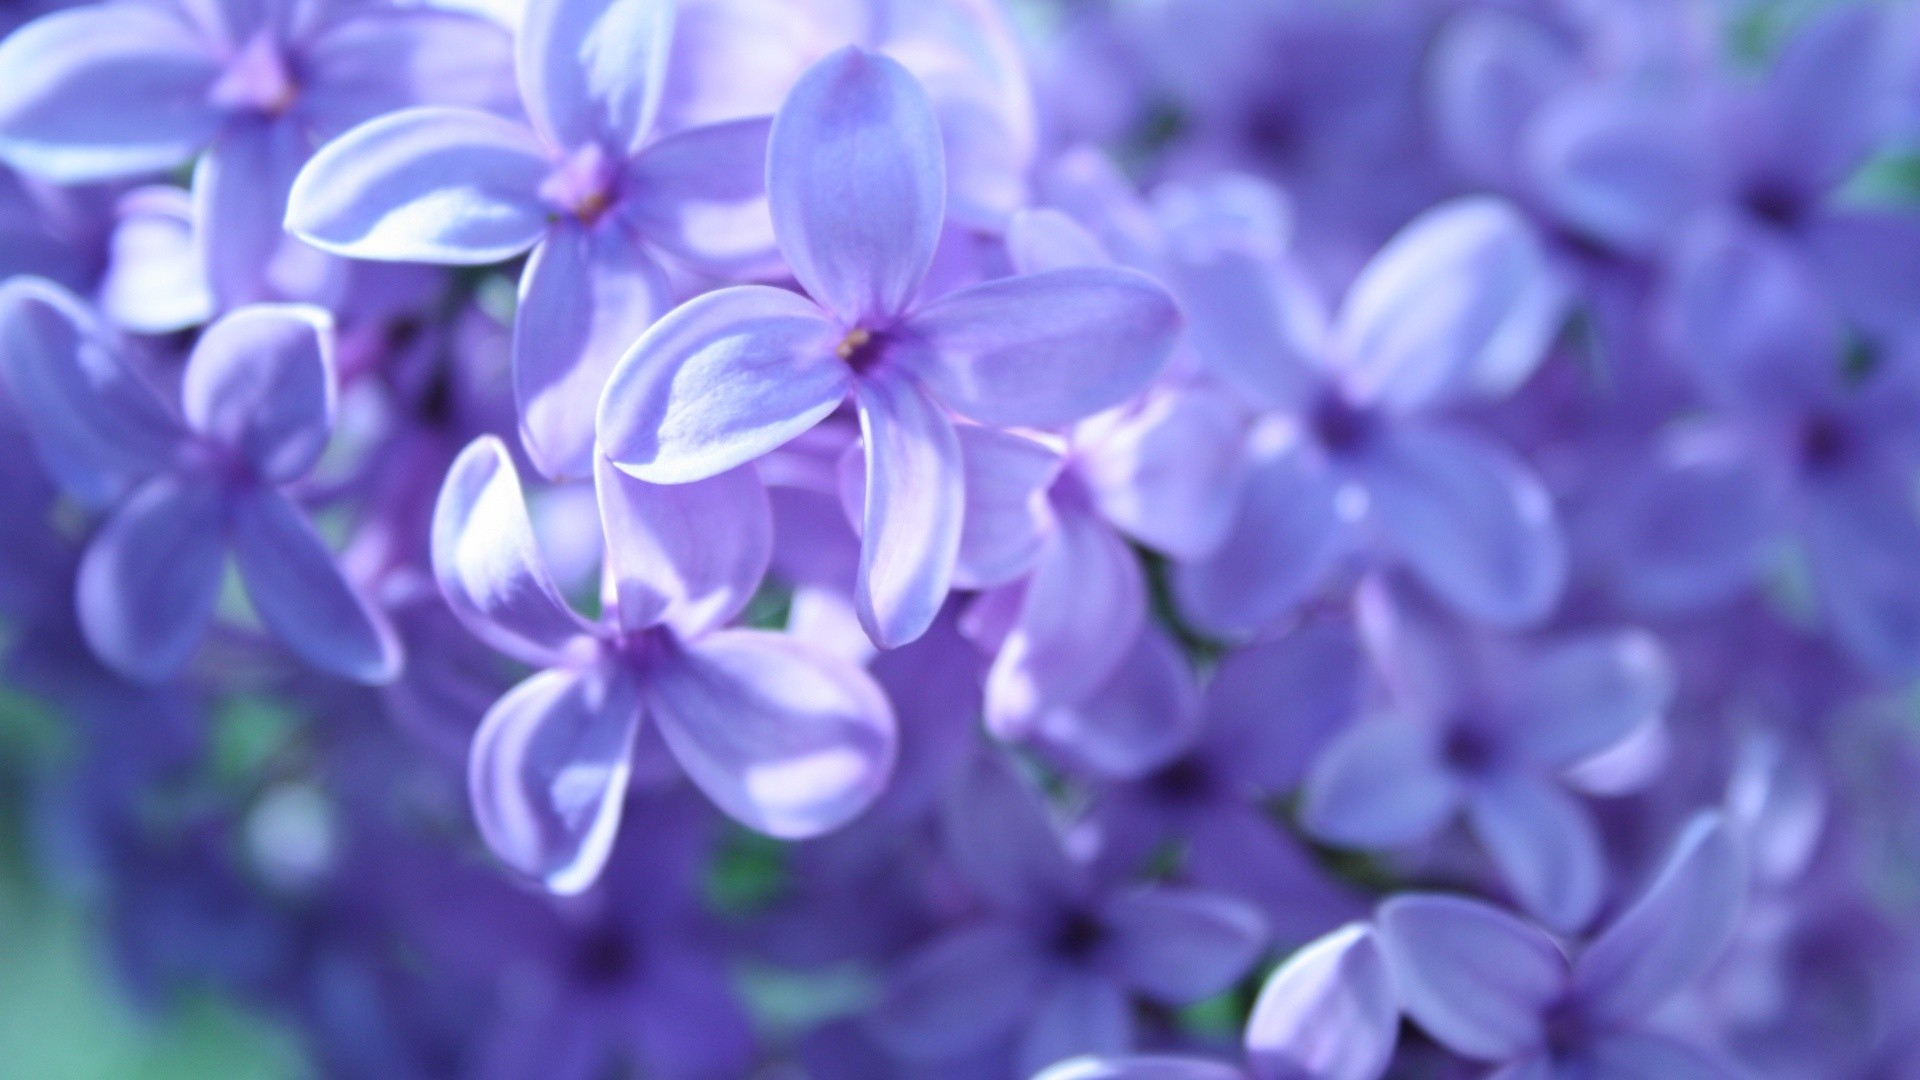 1920x1080 Wallpapers For Pretty Purple Flower Backgrounds